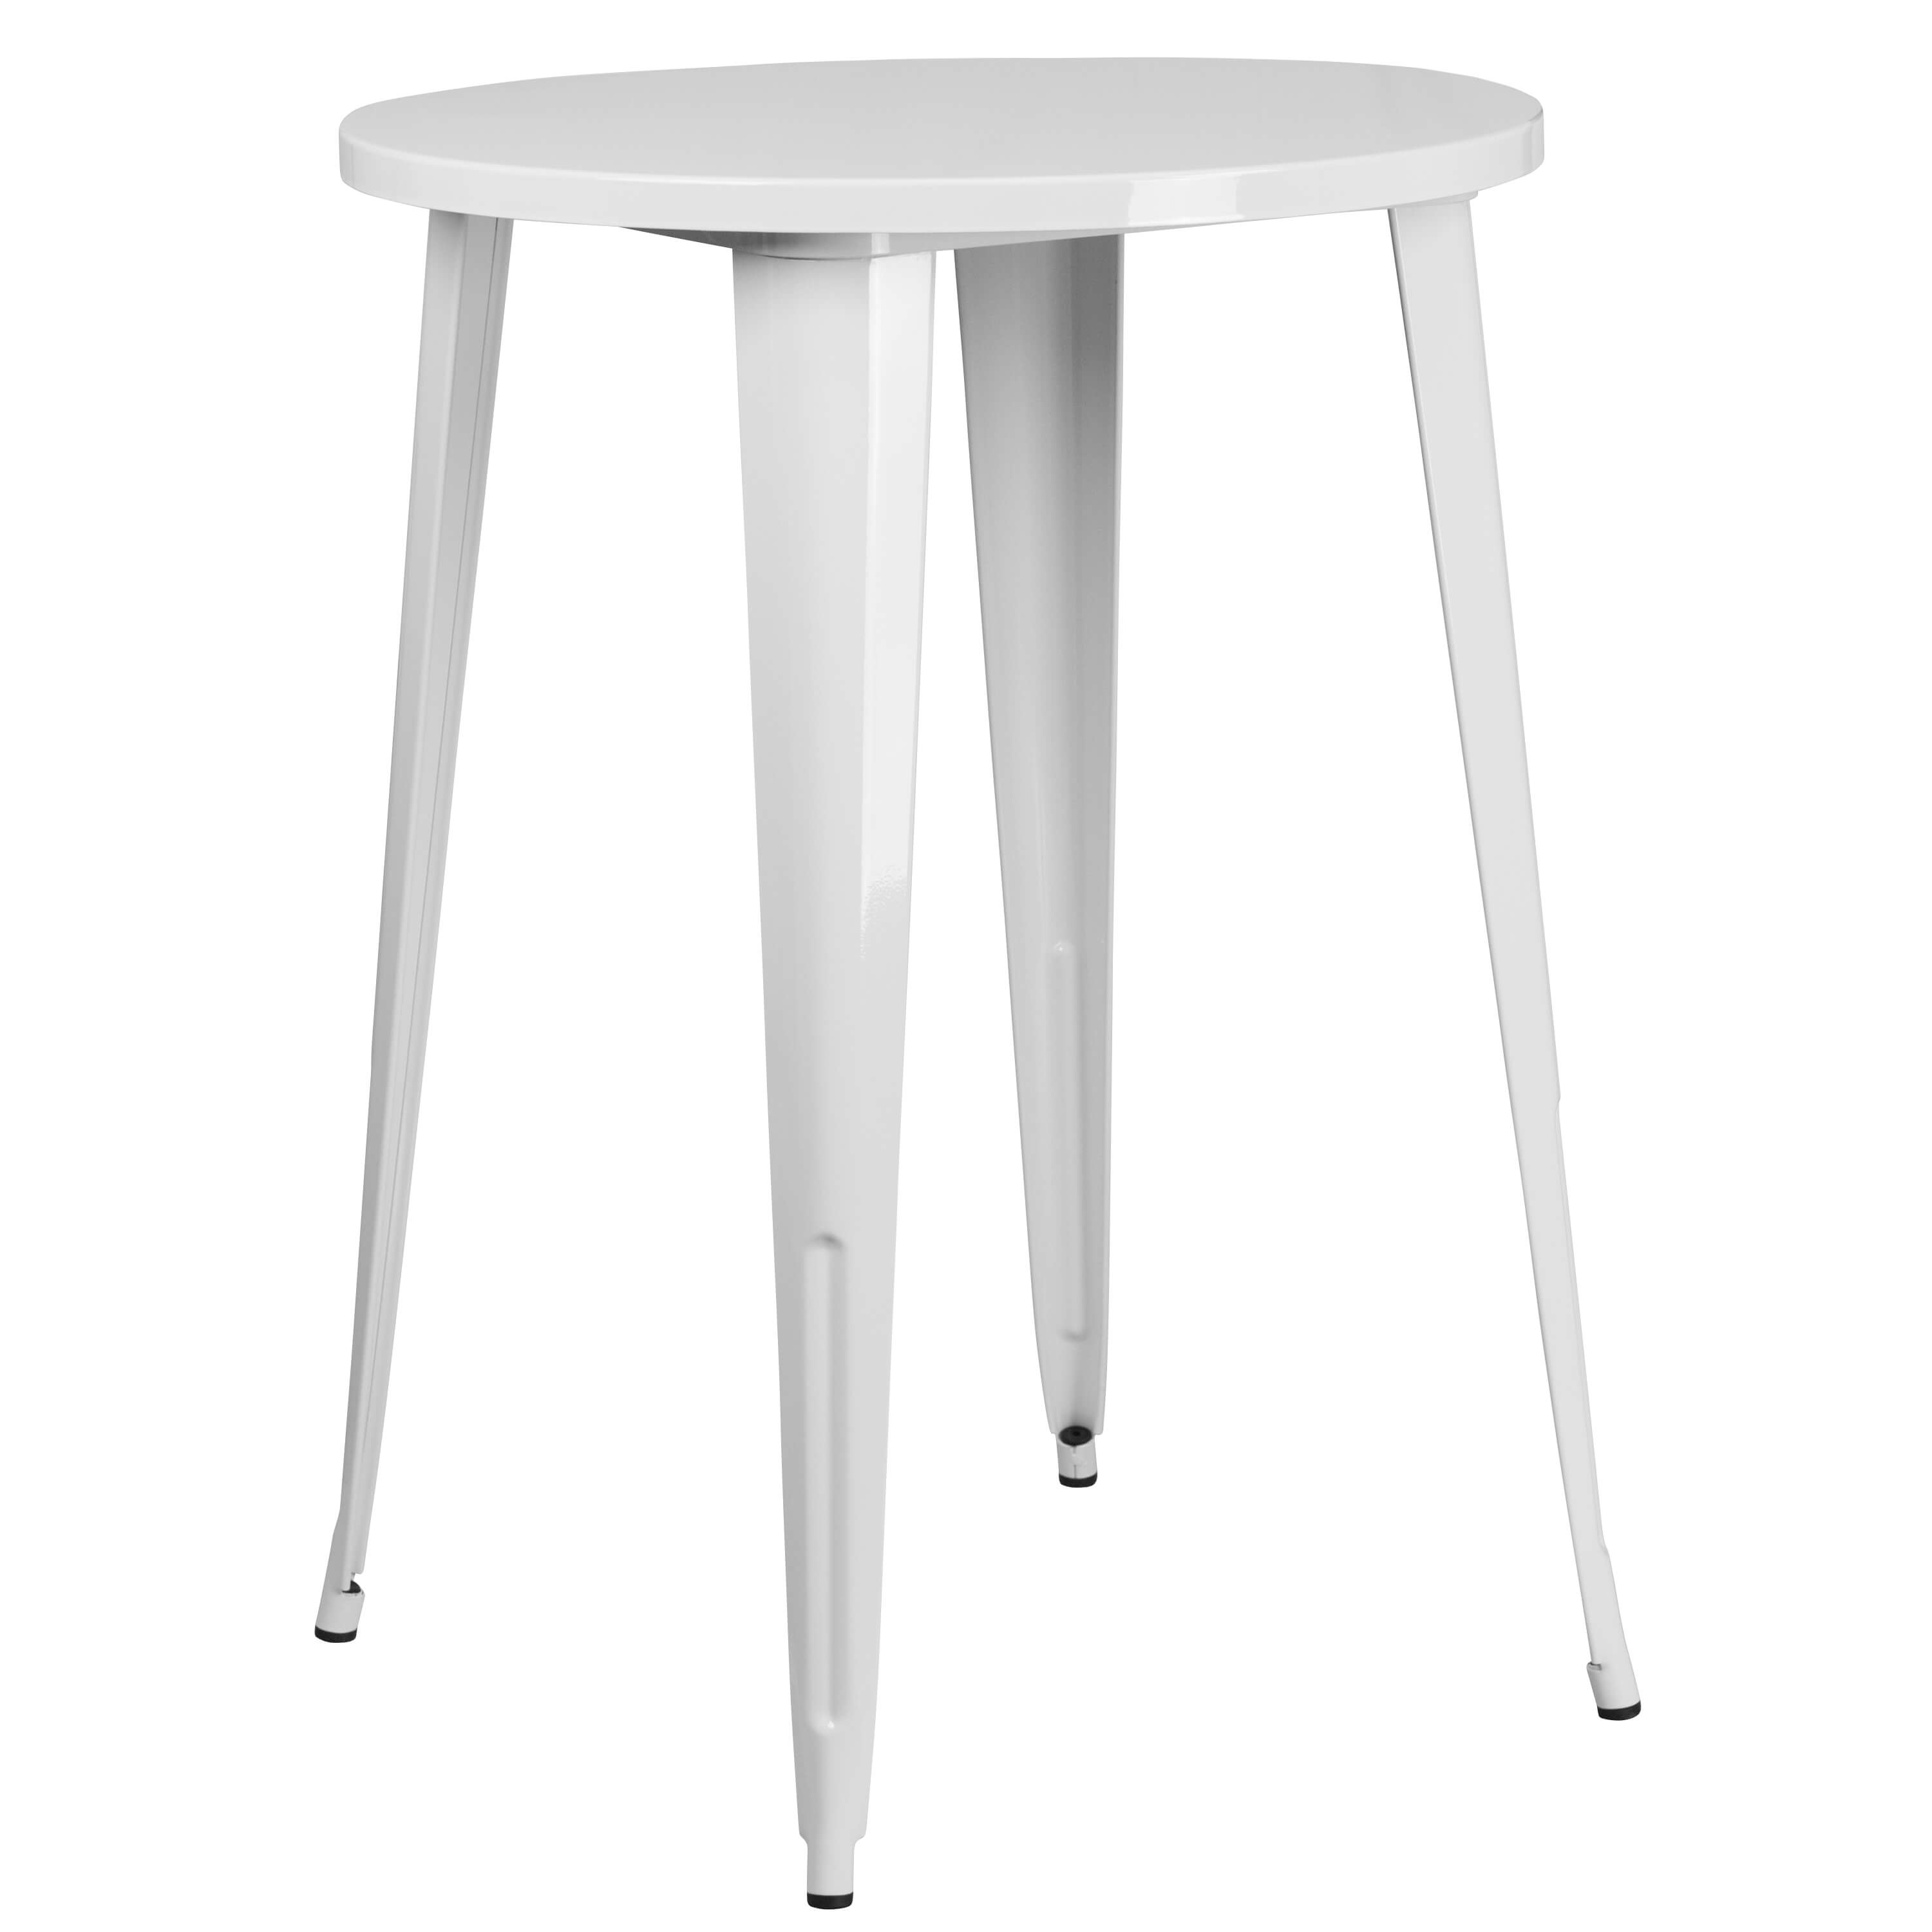 Cafe table CUB CH 51090 40 WH GG FLA